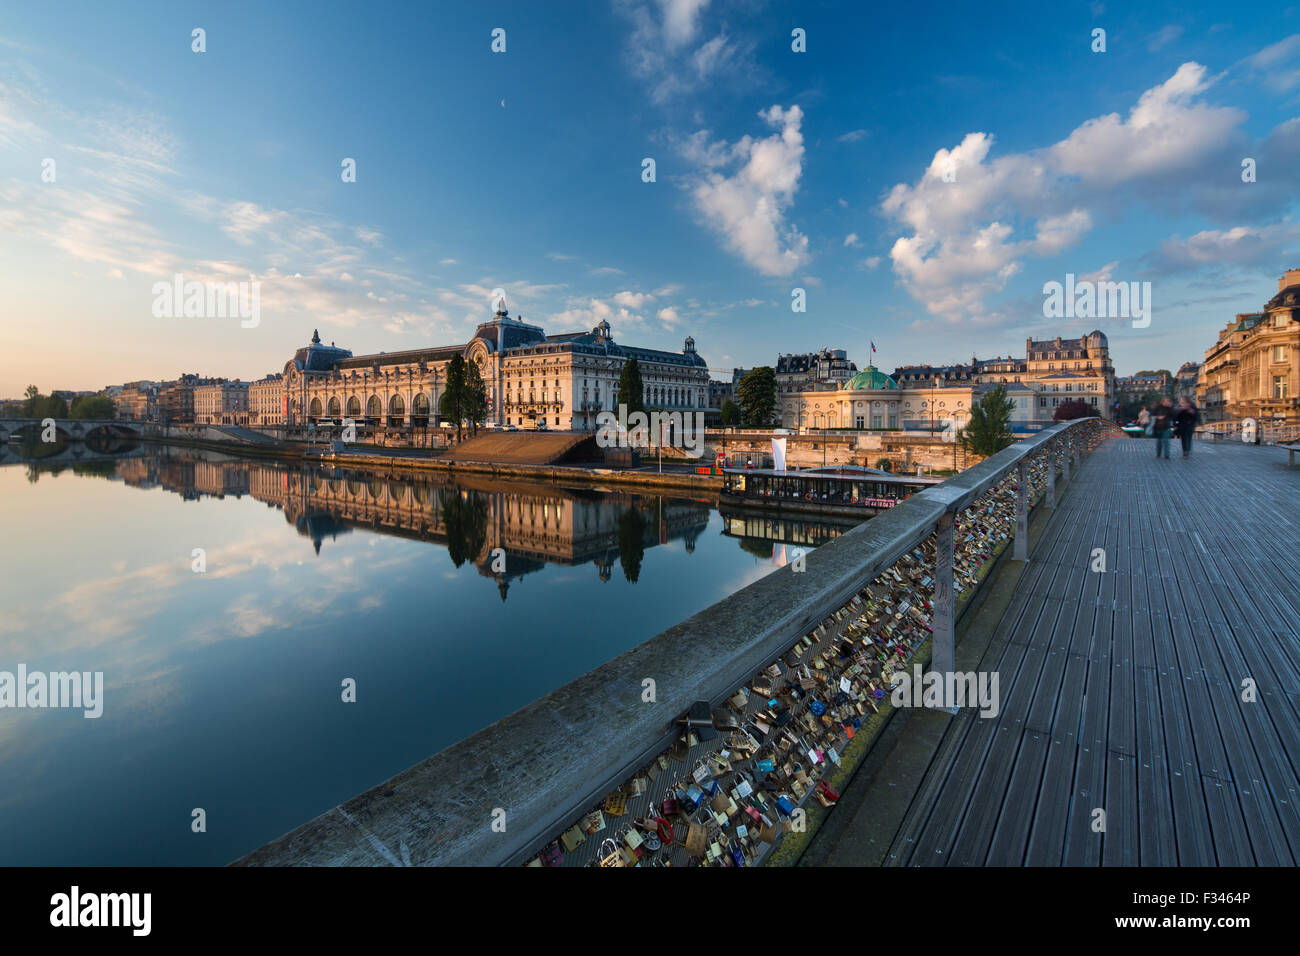 the Musée d'Orsay and River Seine from Pont Solférino at dawn, Paris, France - Stock Image